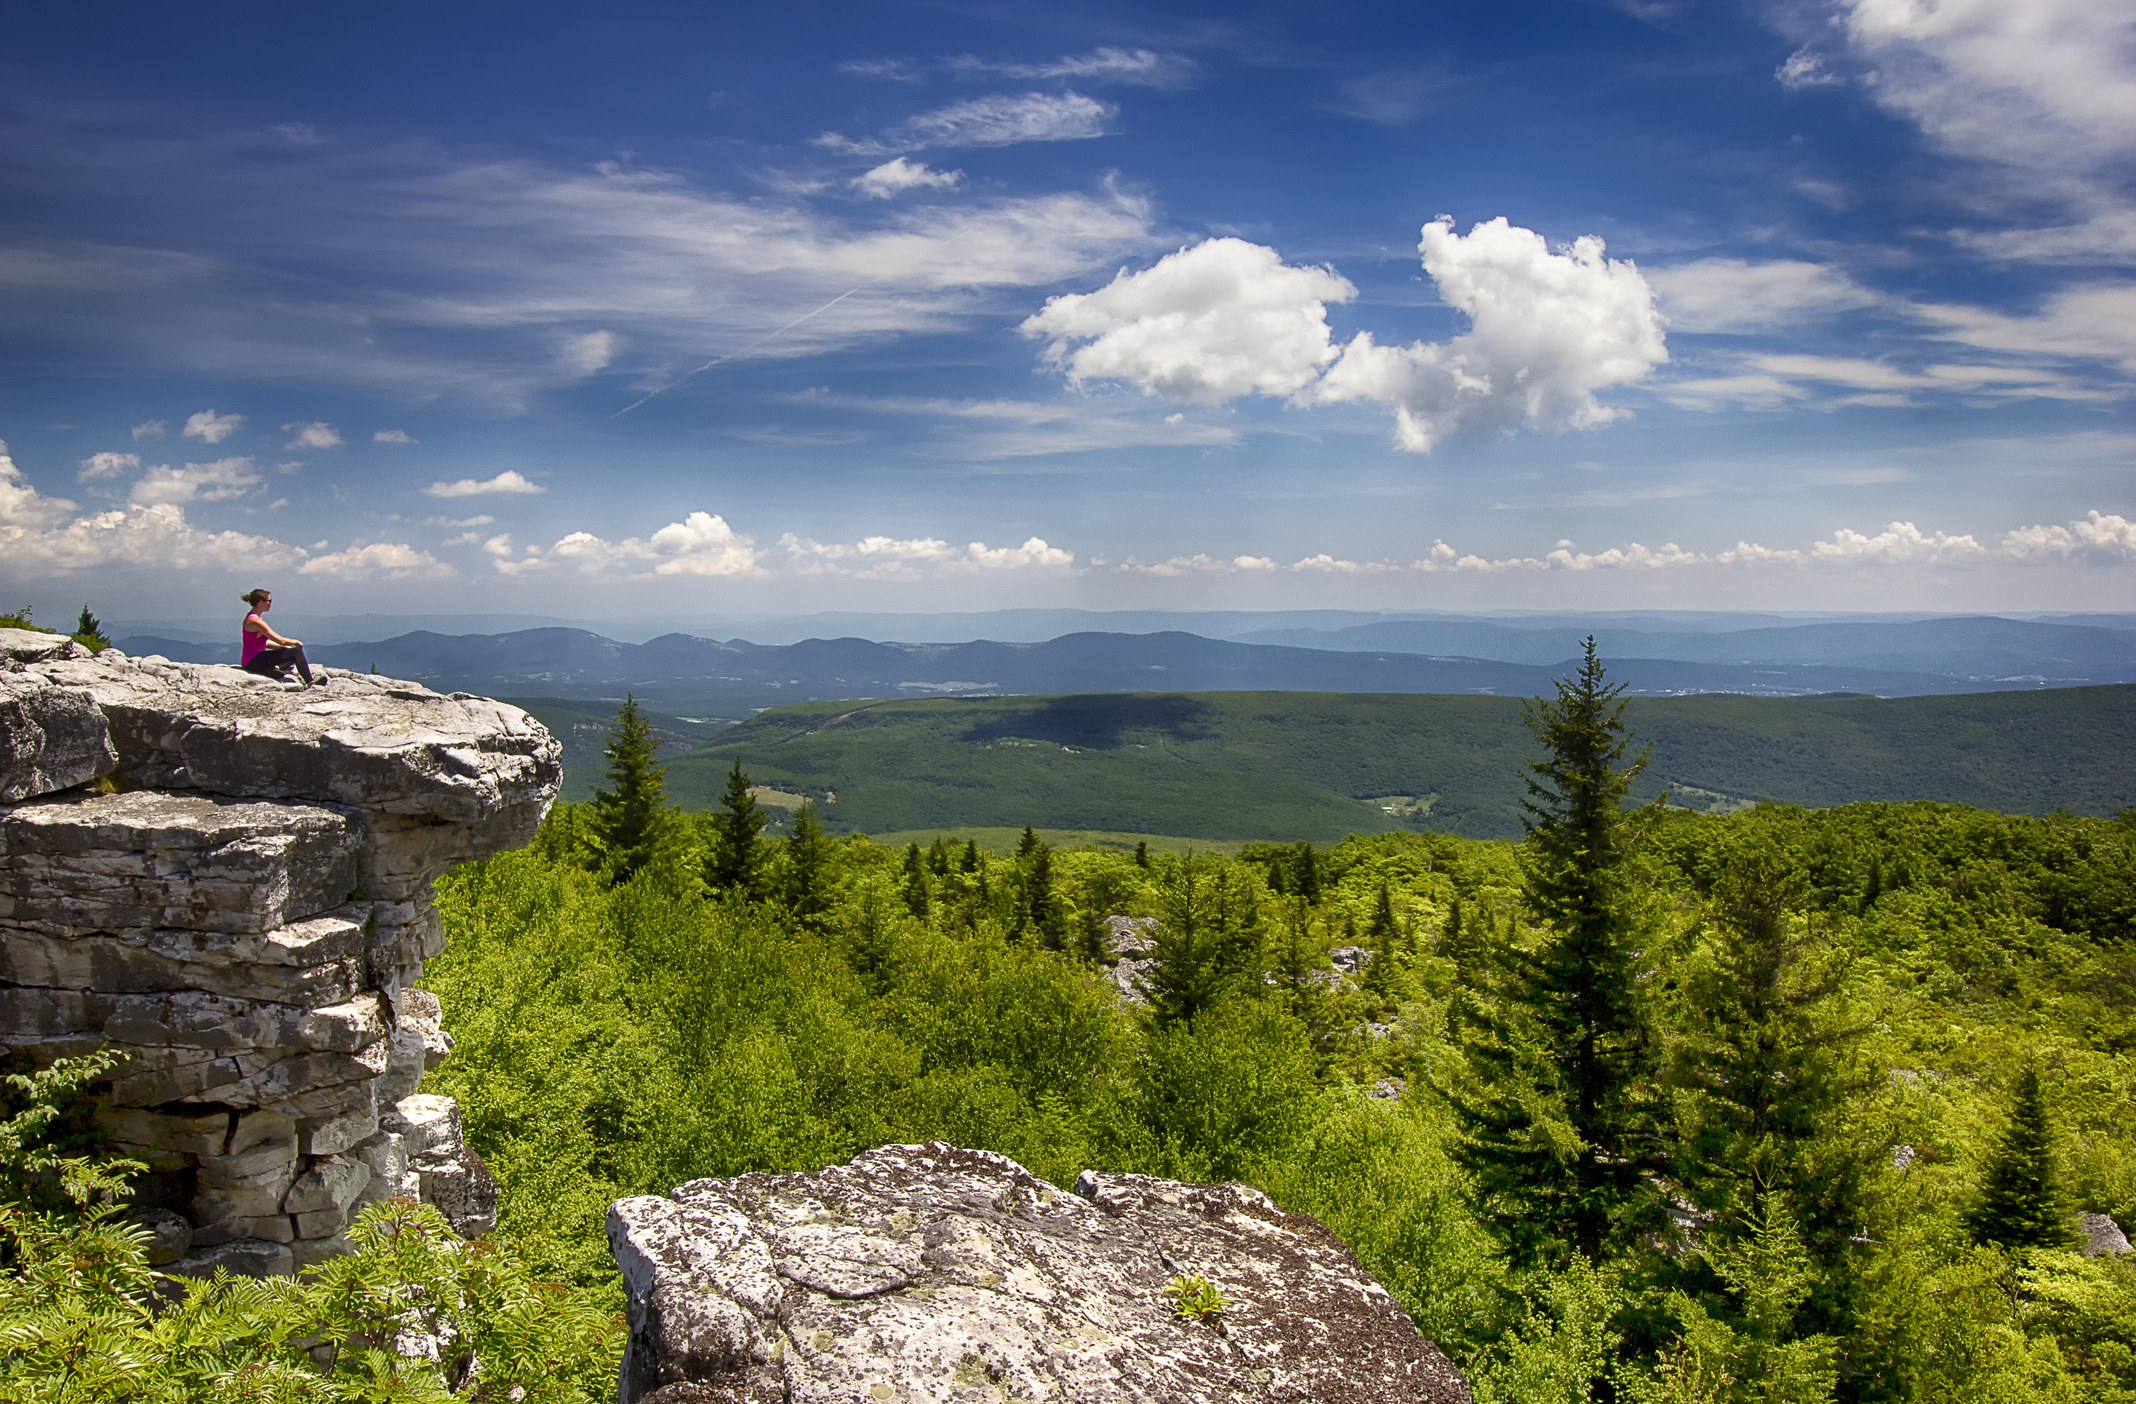 A hike sits on a cliff overlooking the green trees of Dolly Sods Wilderness under a blue and cloudy sky